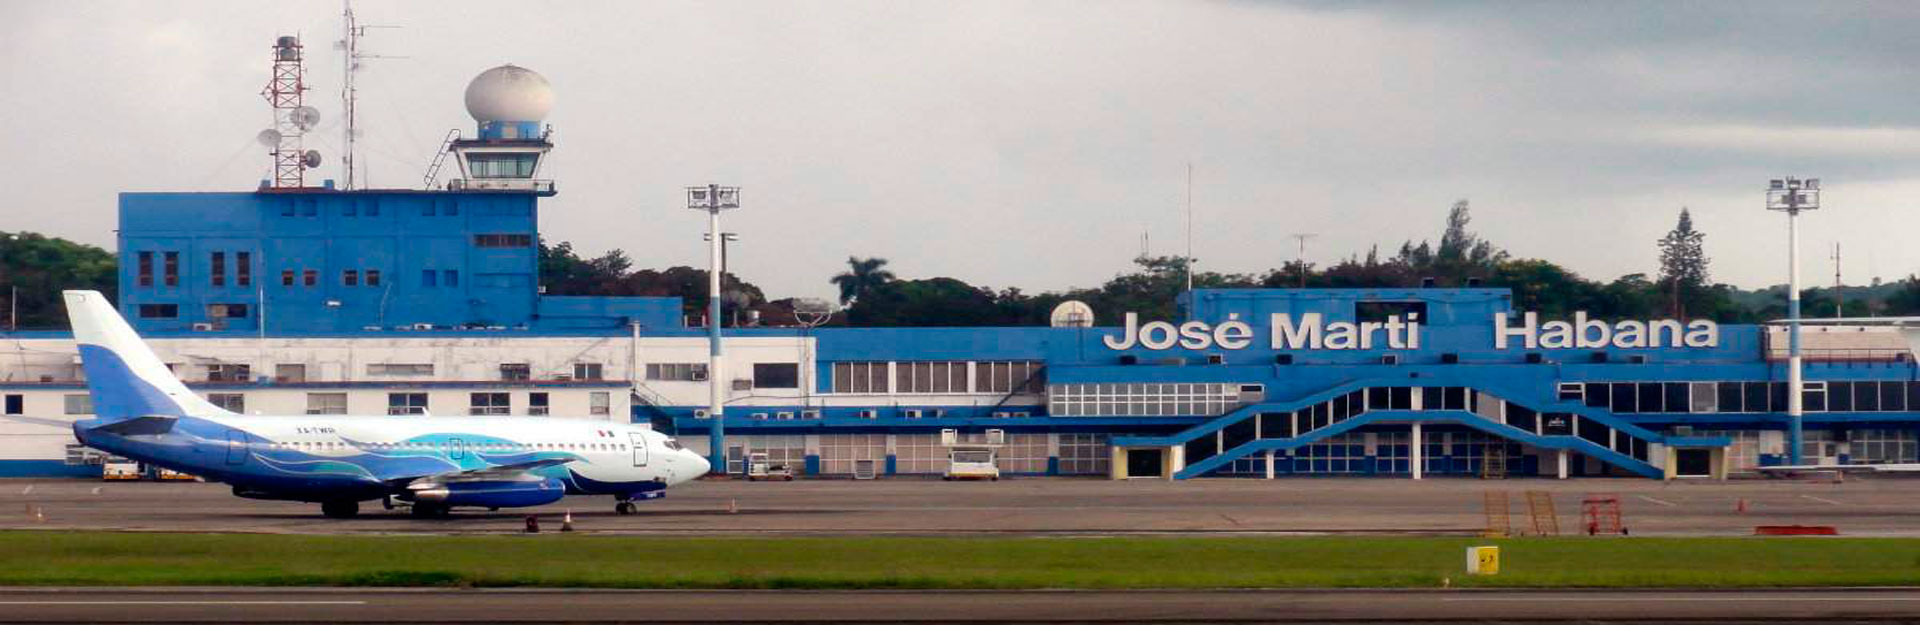 Jose Marti Internationaler Flughafen, Cuba Tarvel